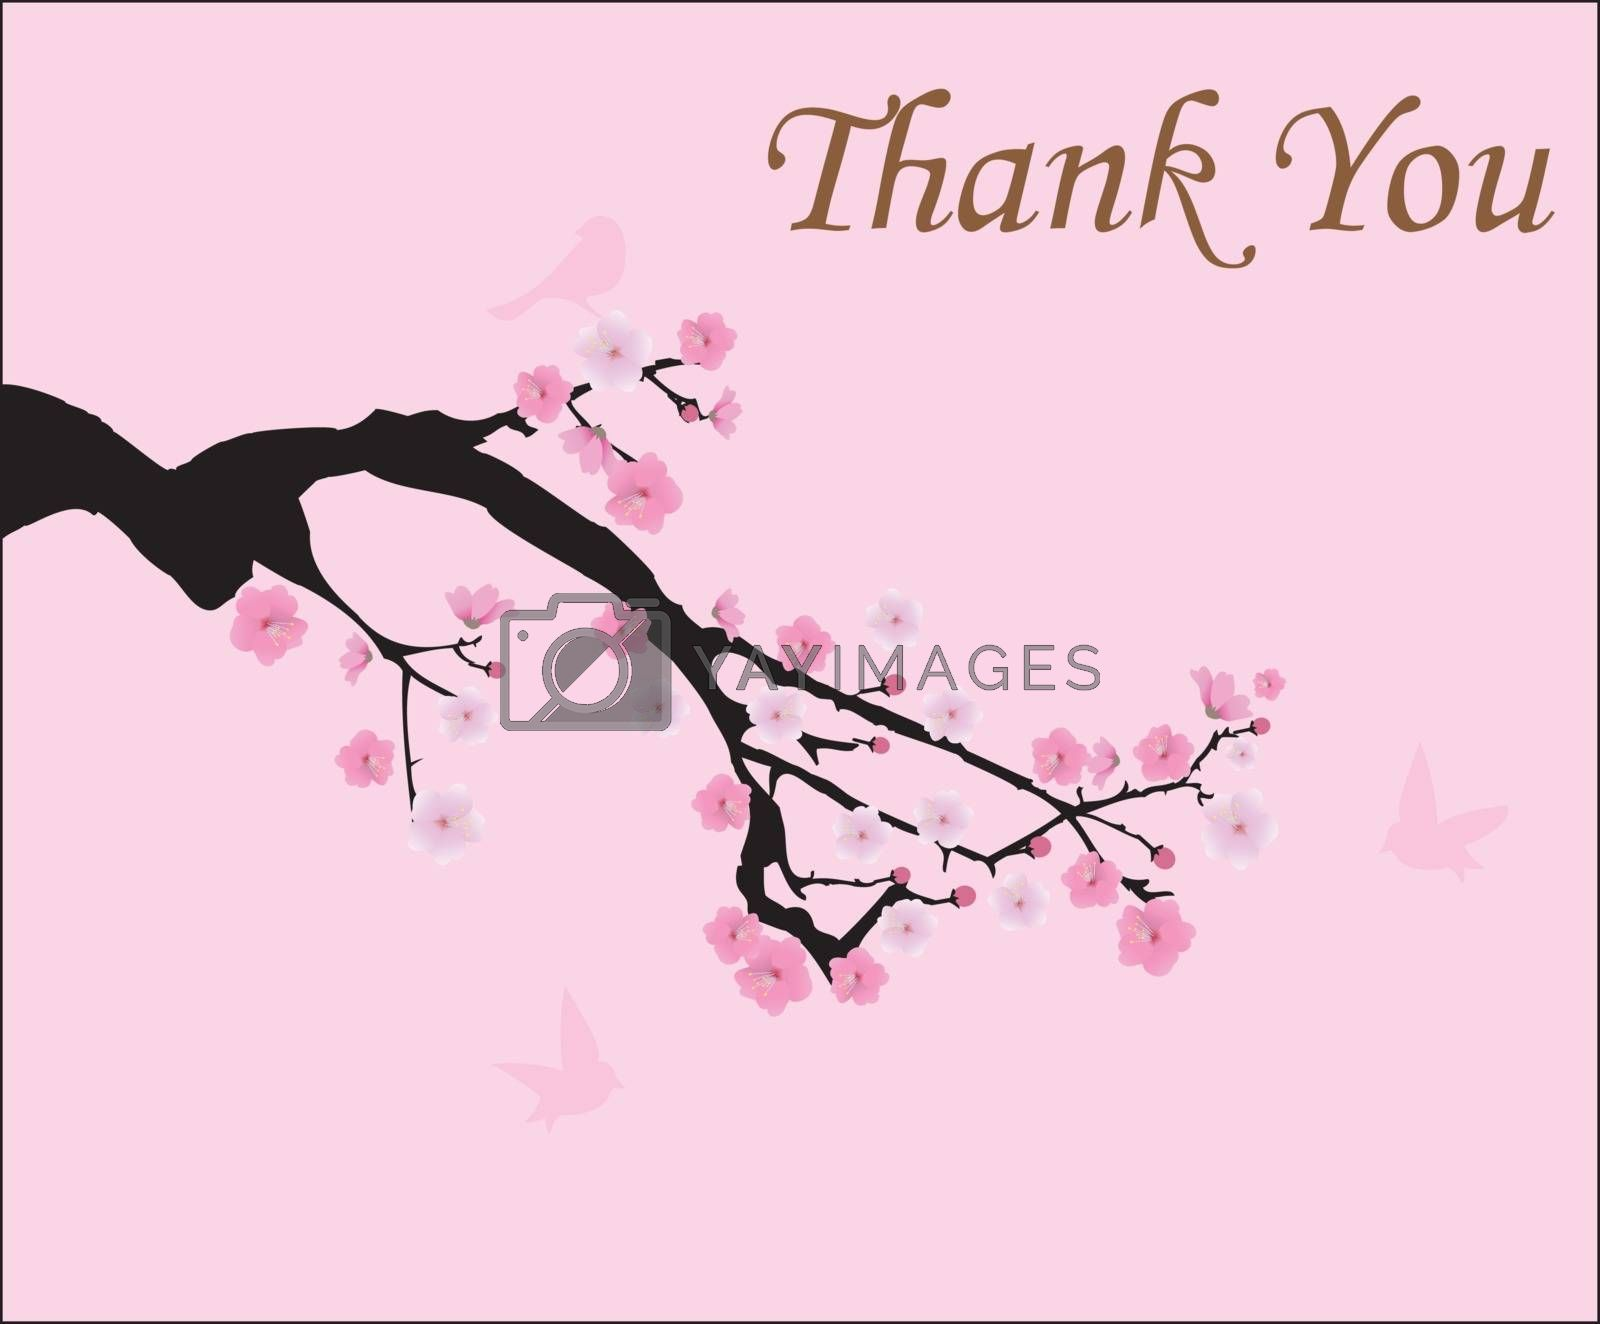 vector illustration of cherry blossom with birds thank you card